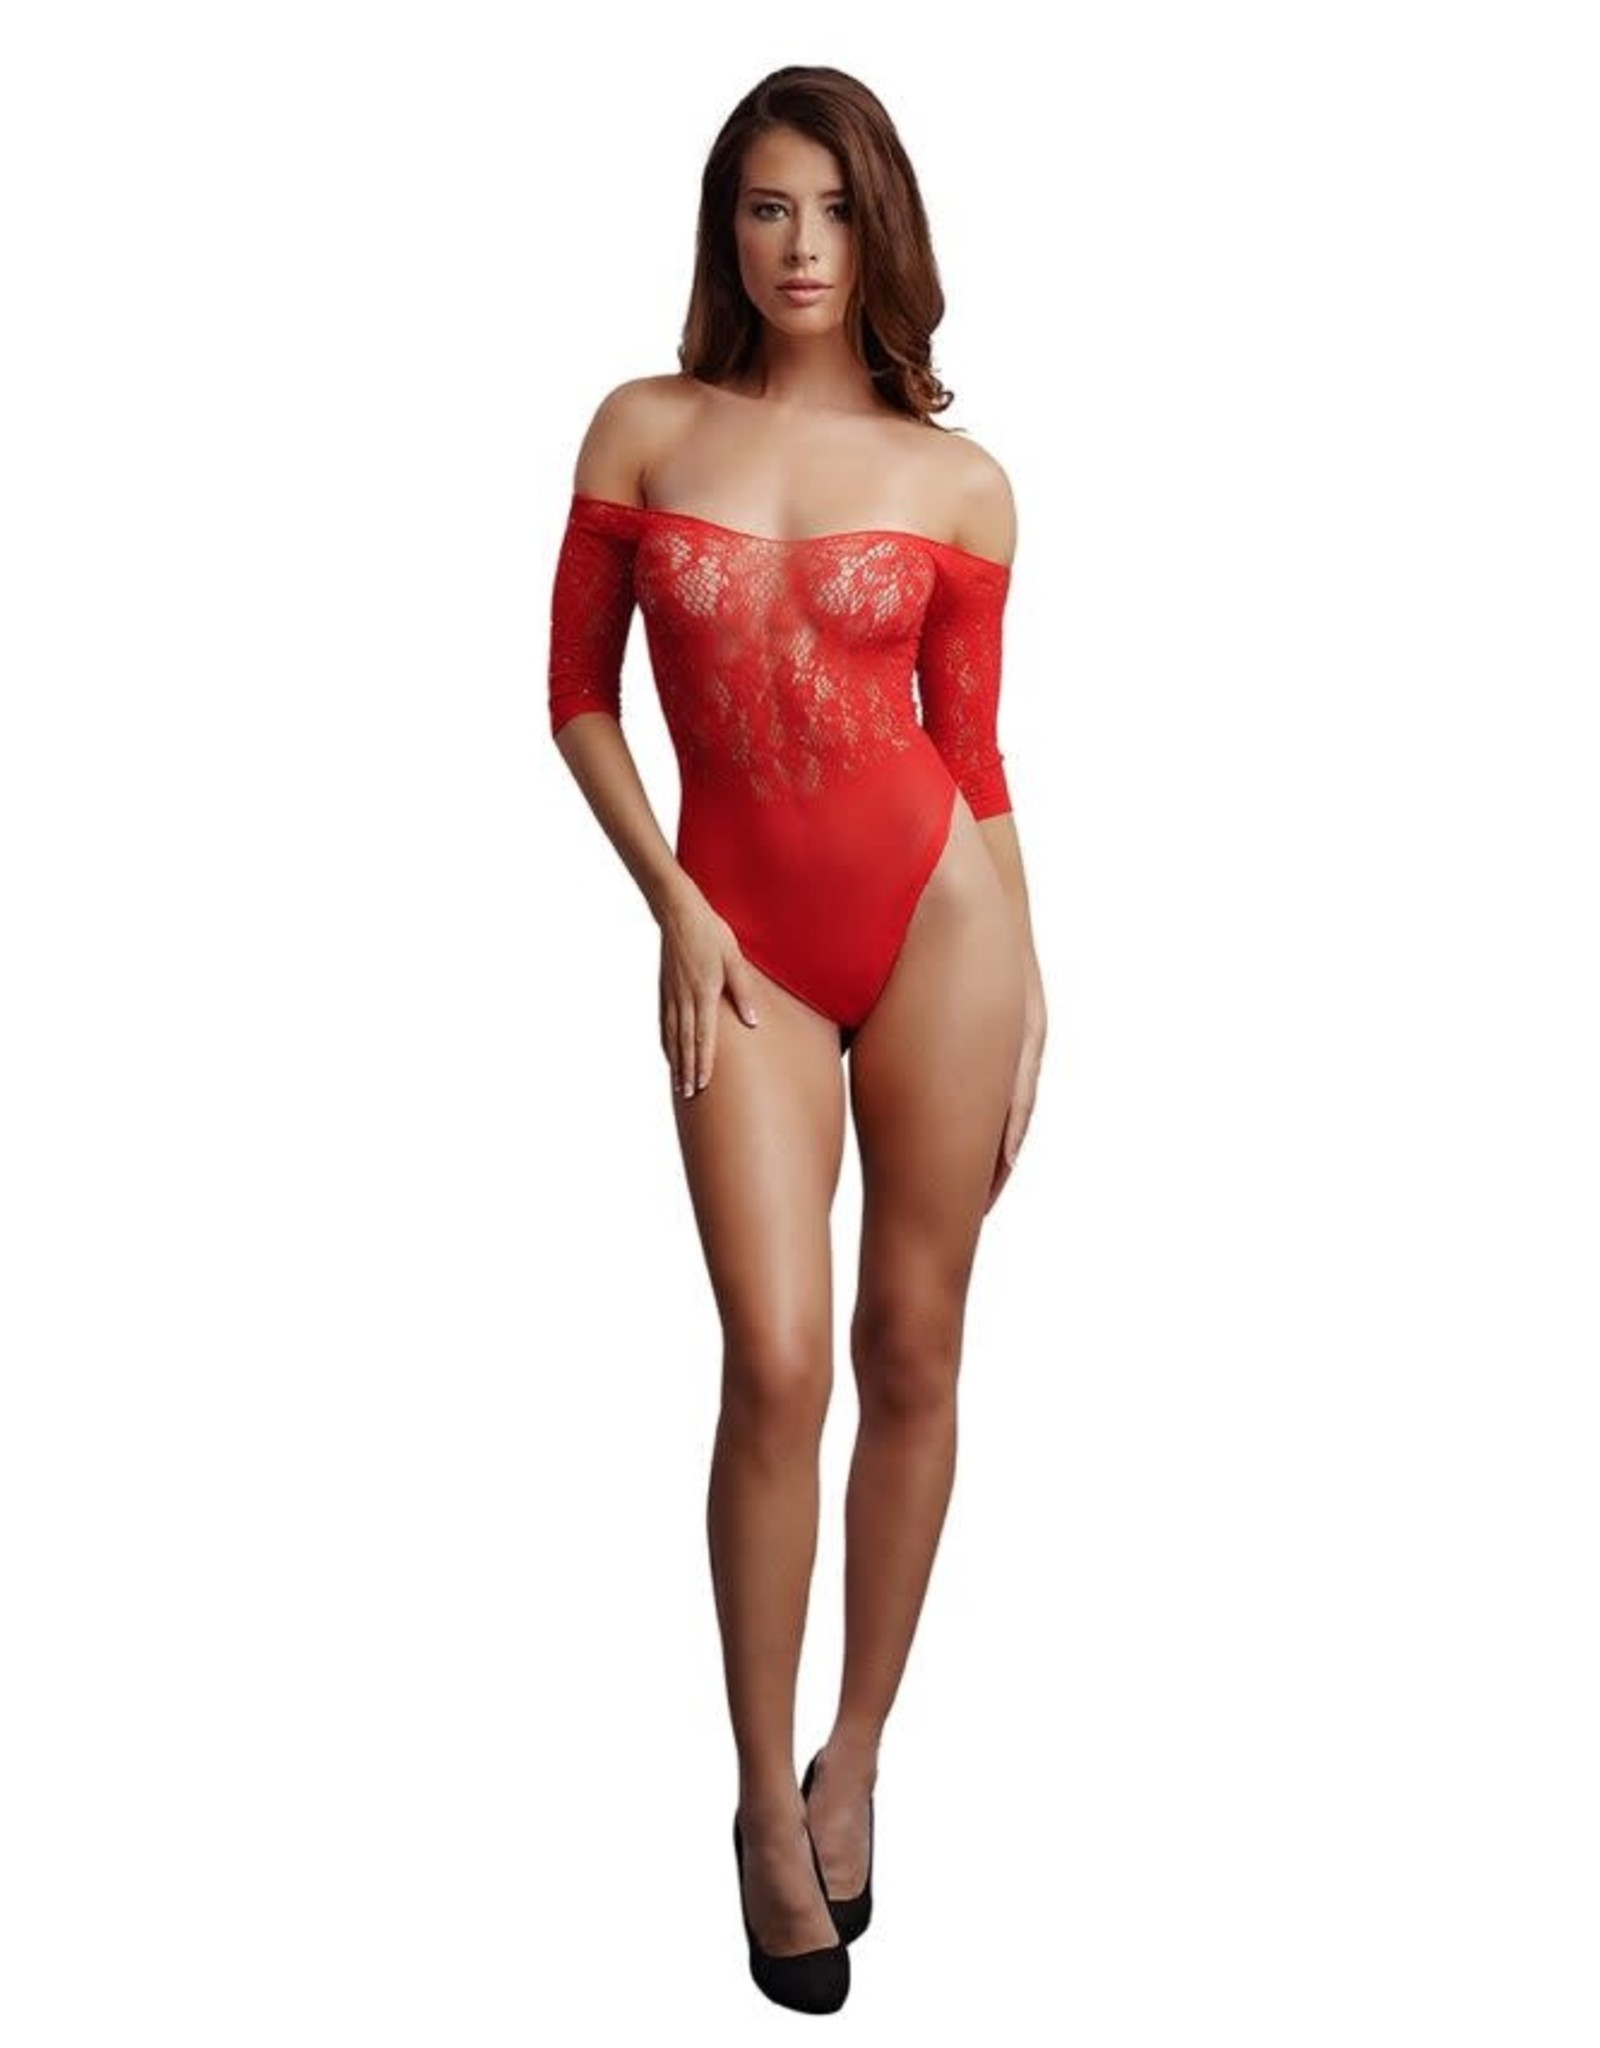 LE DESIR LINGERIE LE DESIR - CROTCHLESS RHINESTONE TEDDY - RED ONE SIZE